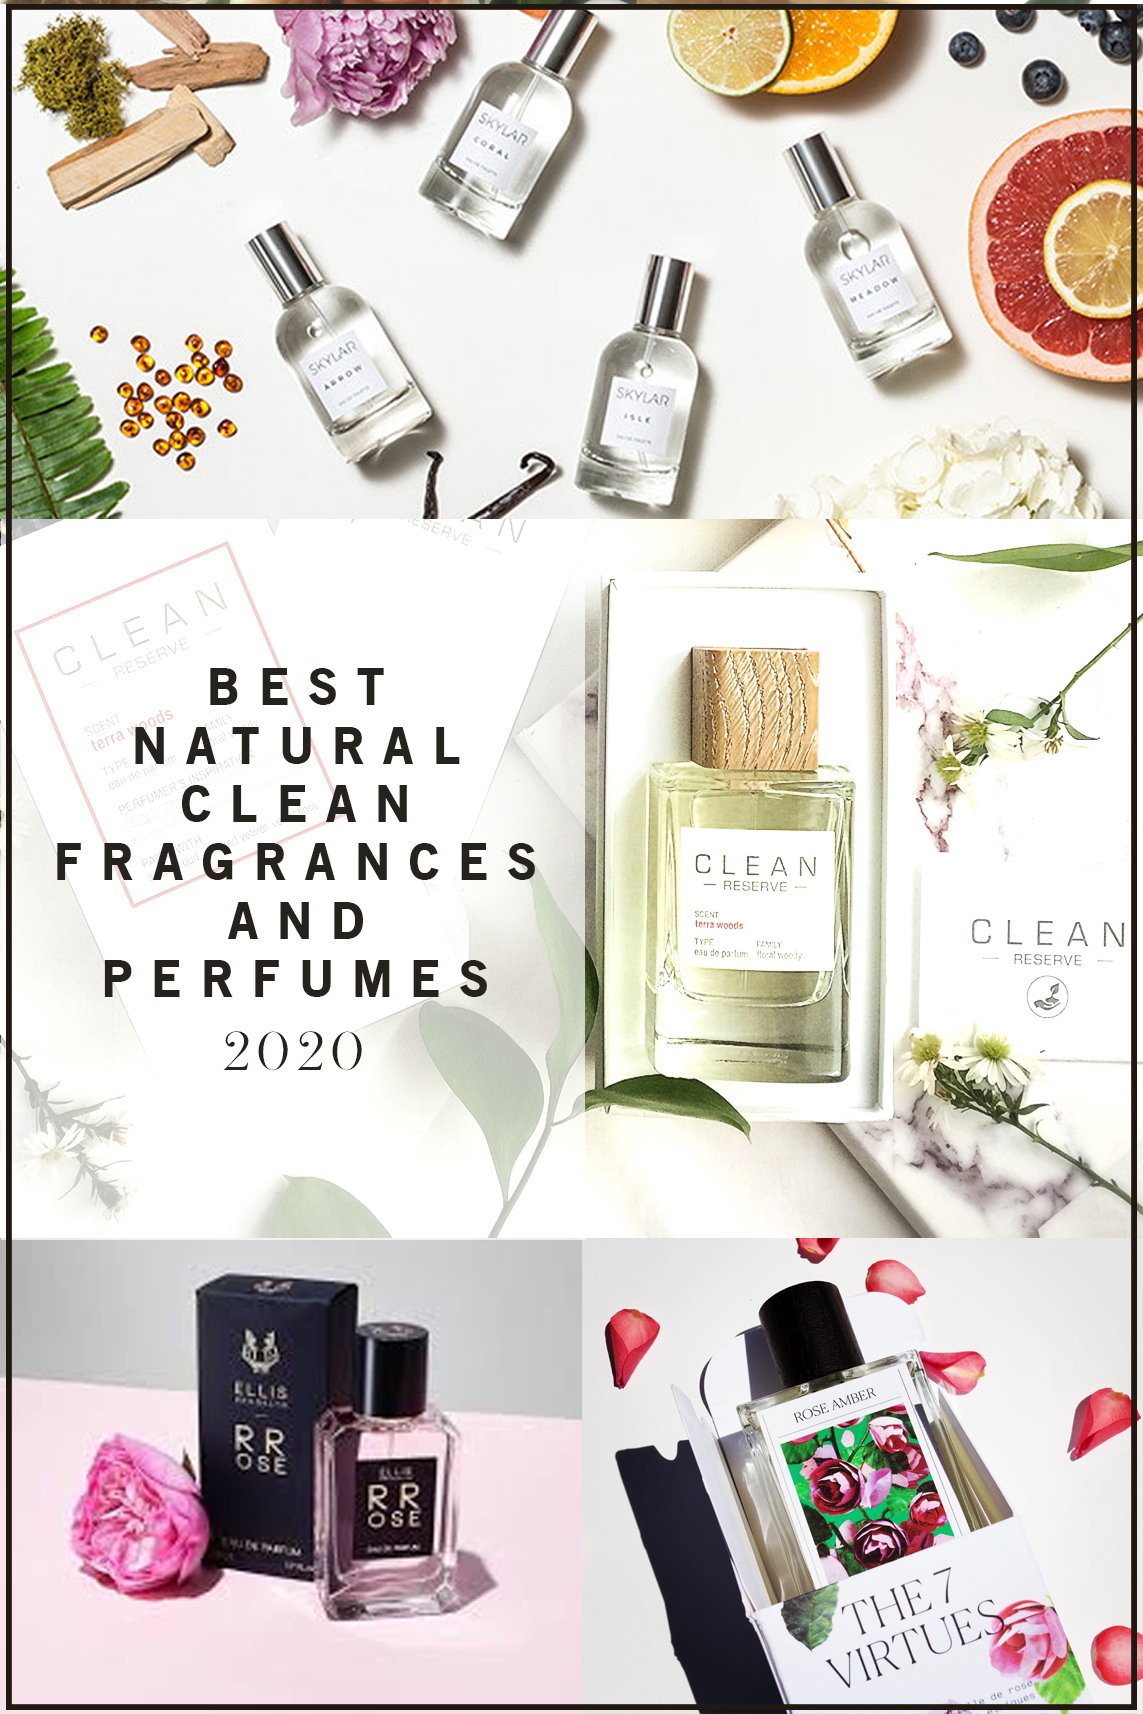 Best Natural Clean Fragrances and Perfumes for 2020 and Beyond